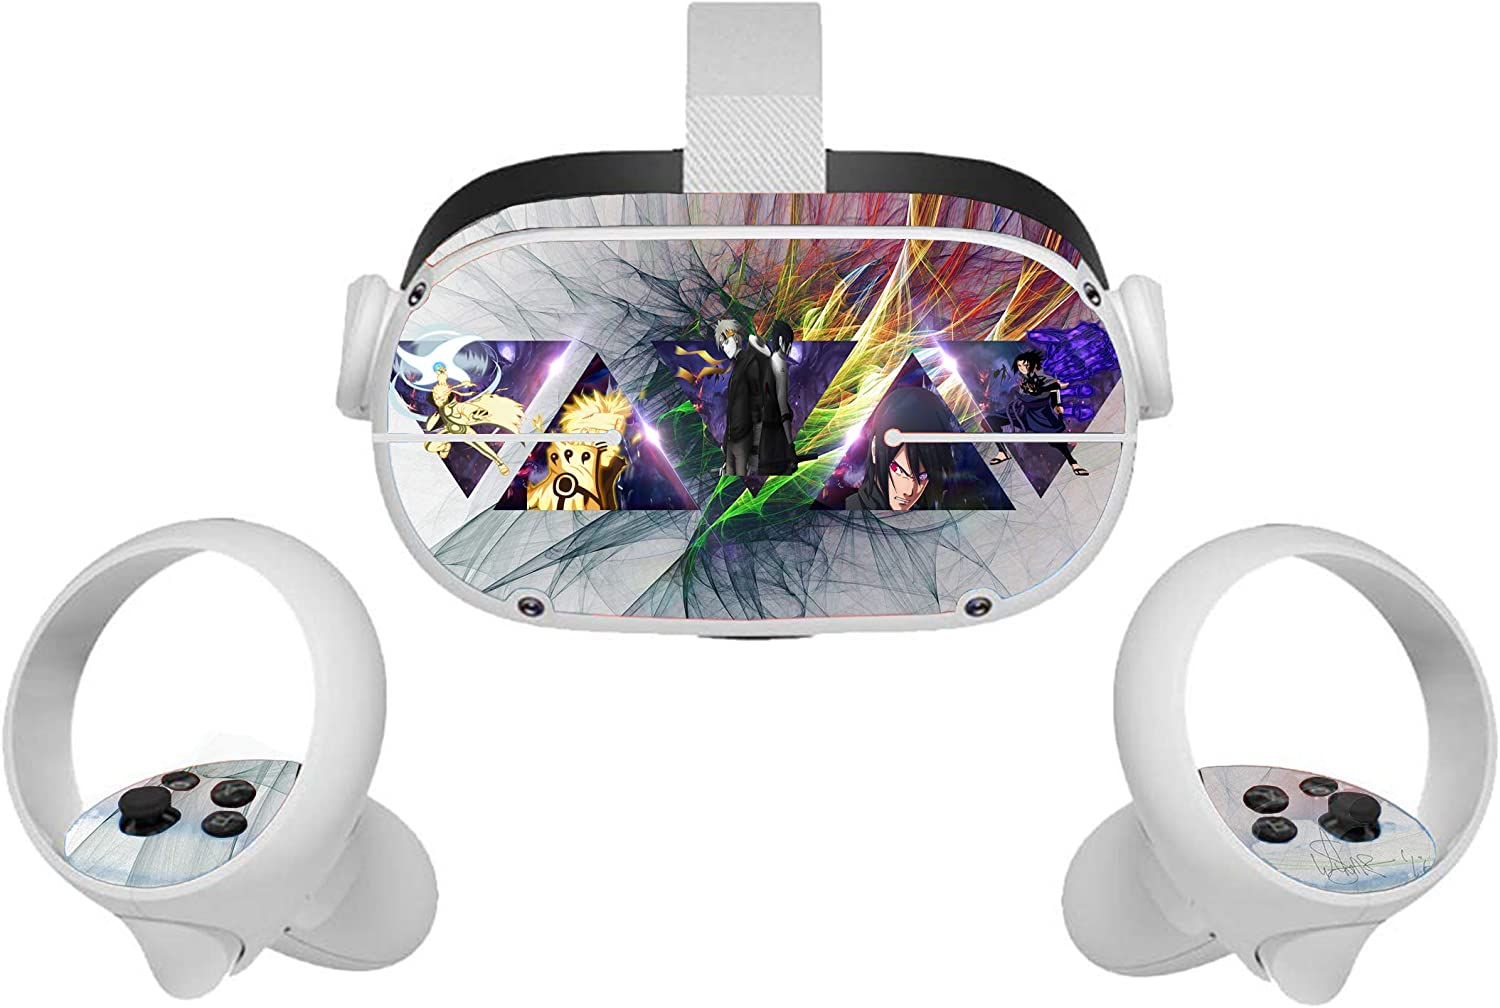 Oculus Quest II VR Headset Skin Sticker Uchiha Family Vinyl Decal for Headset and Controller